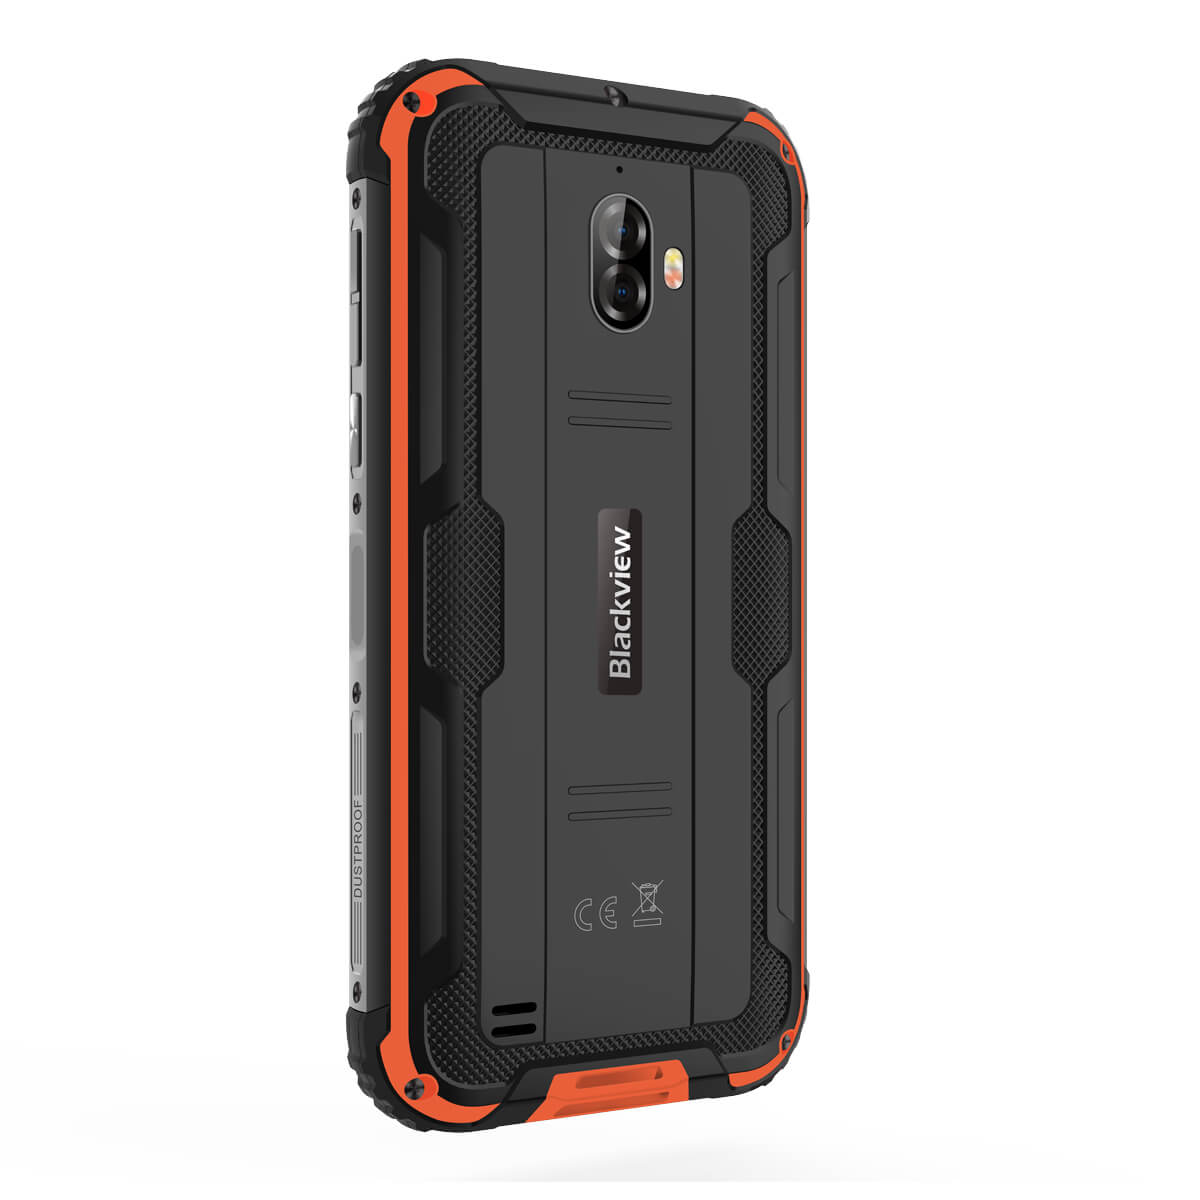 Rugged SA Blackview BV5900 Rugged Smartphone